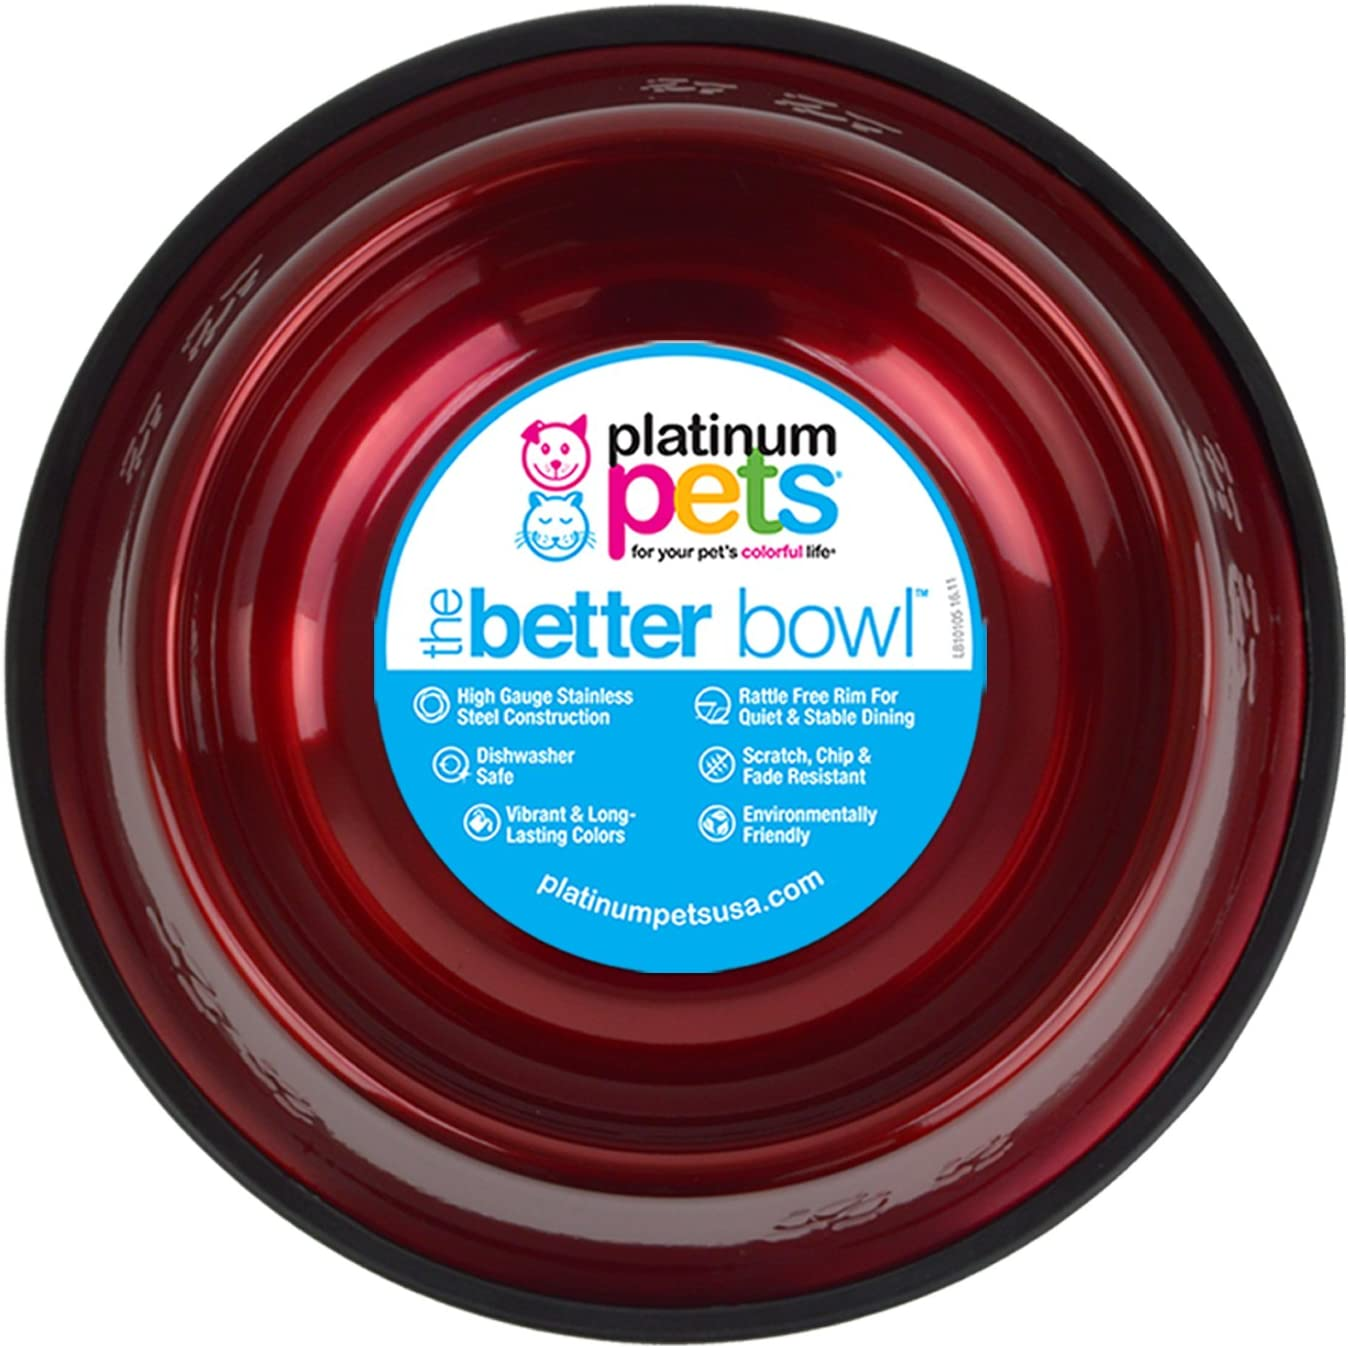 Platinum Pets Non-tip Stainless Steel Dog Bowl, 50 oz, Red